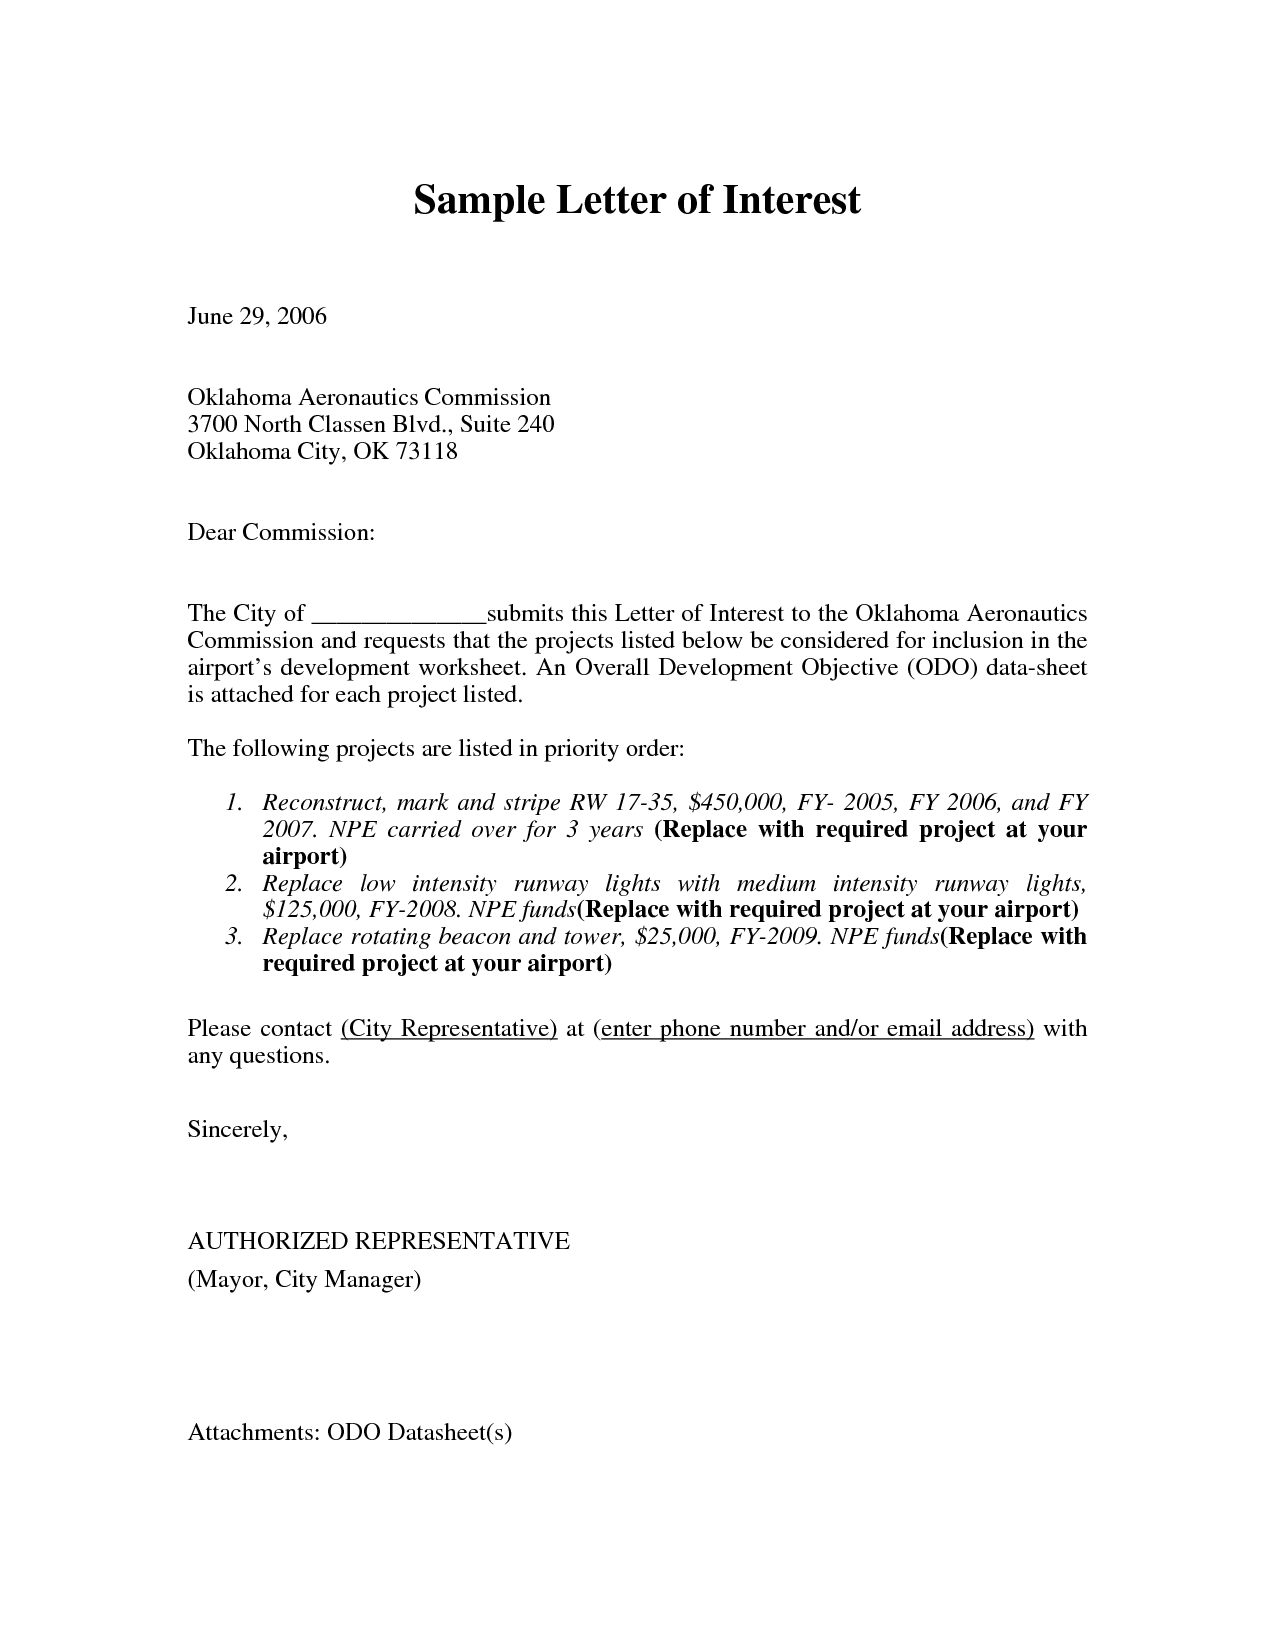 letter of interest internal position sample and letter of interest templates - Internal Job Letter Of Interest